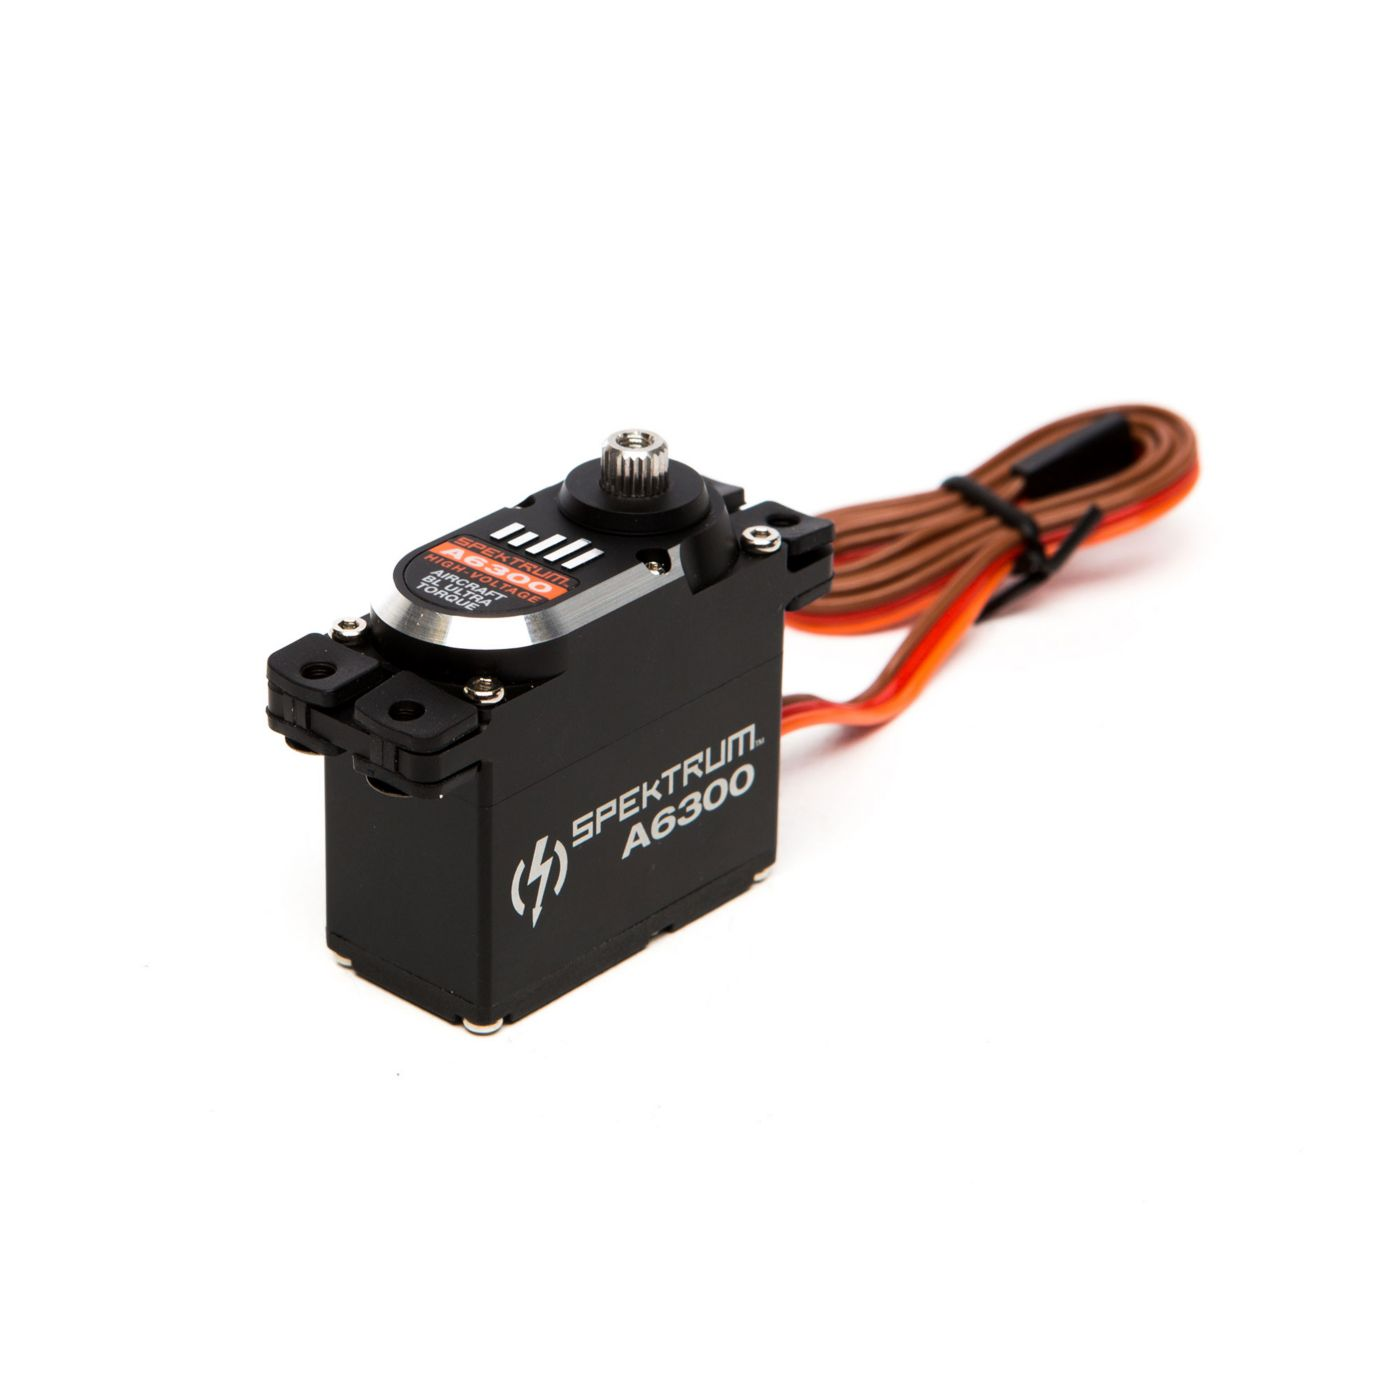 hight resolution of image for a6300 hv ultra torque brushless aircraft servo mg from horizonhobby